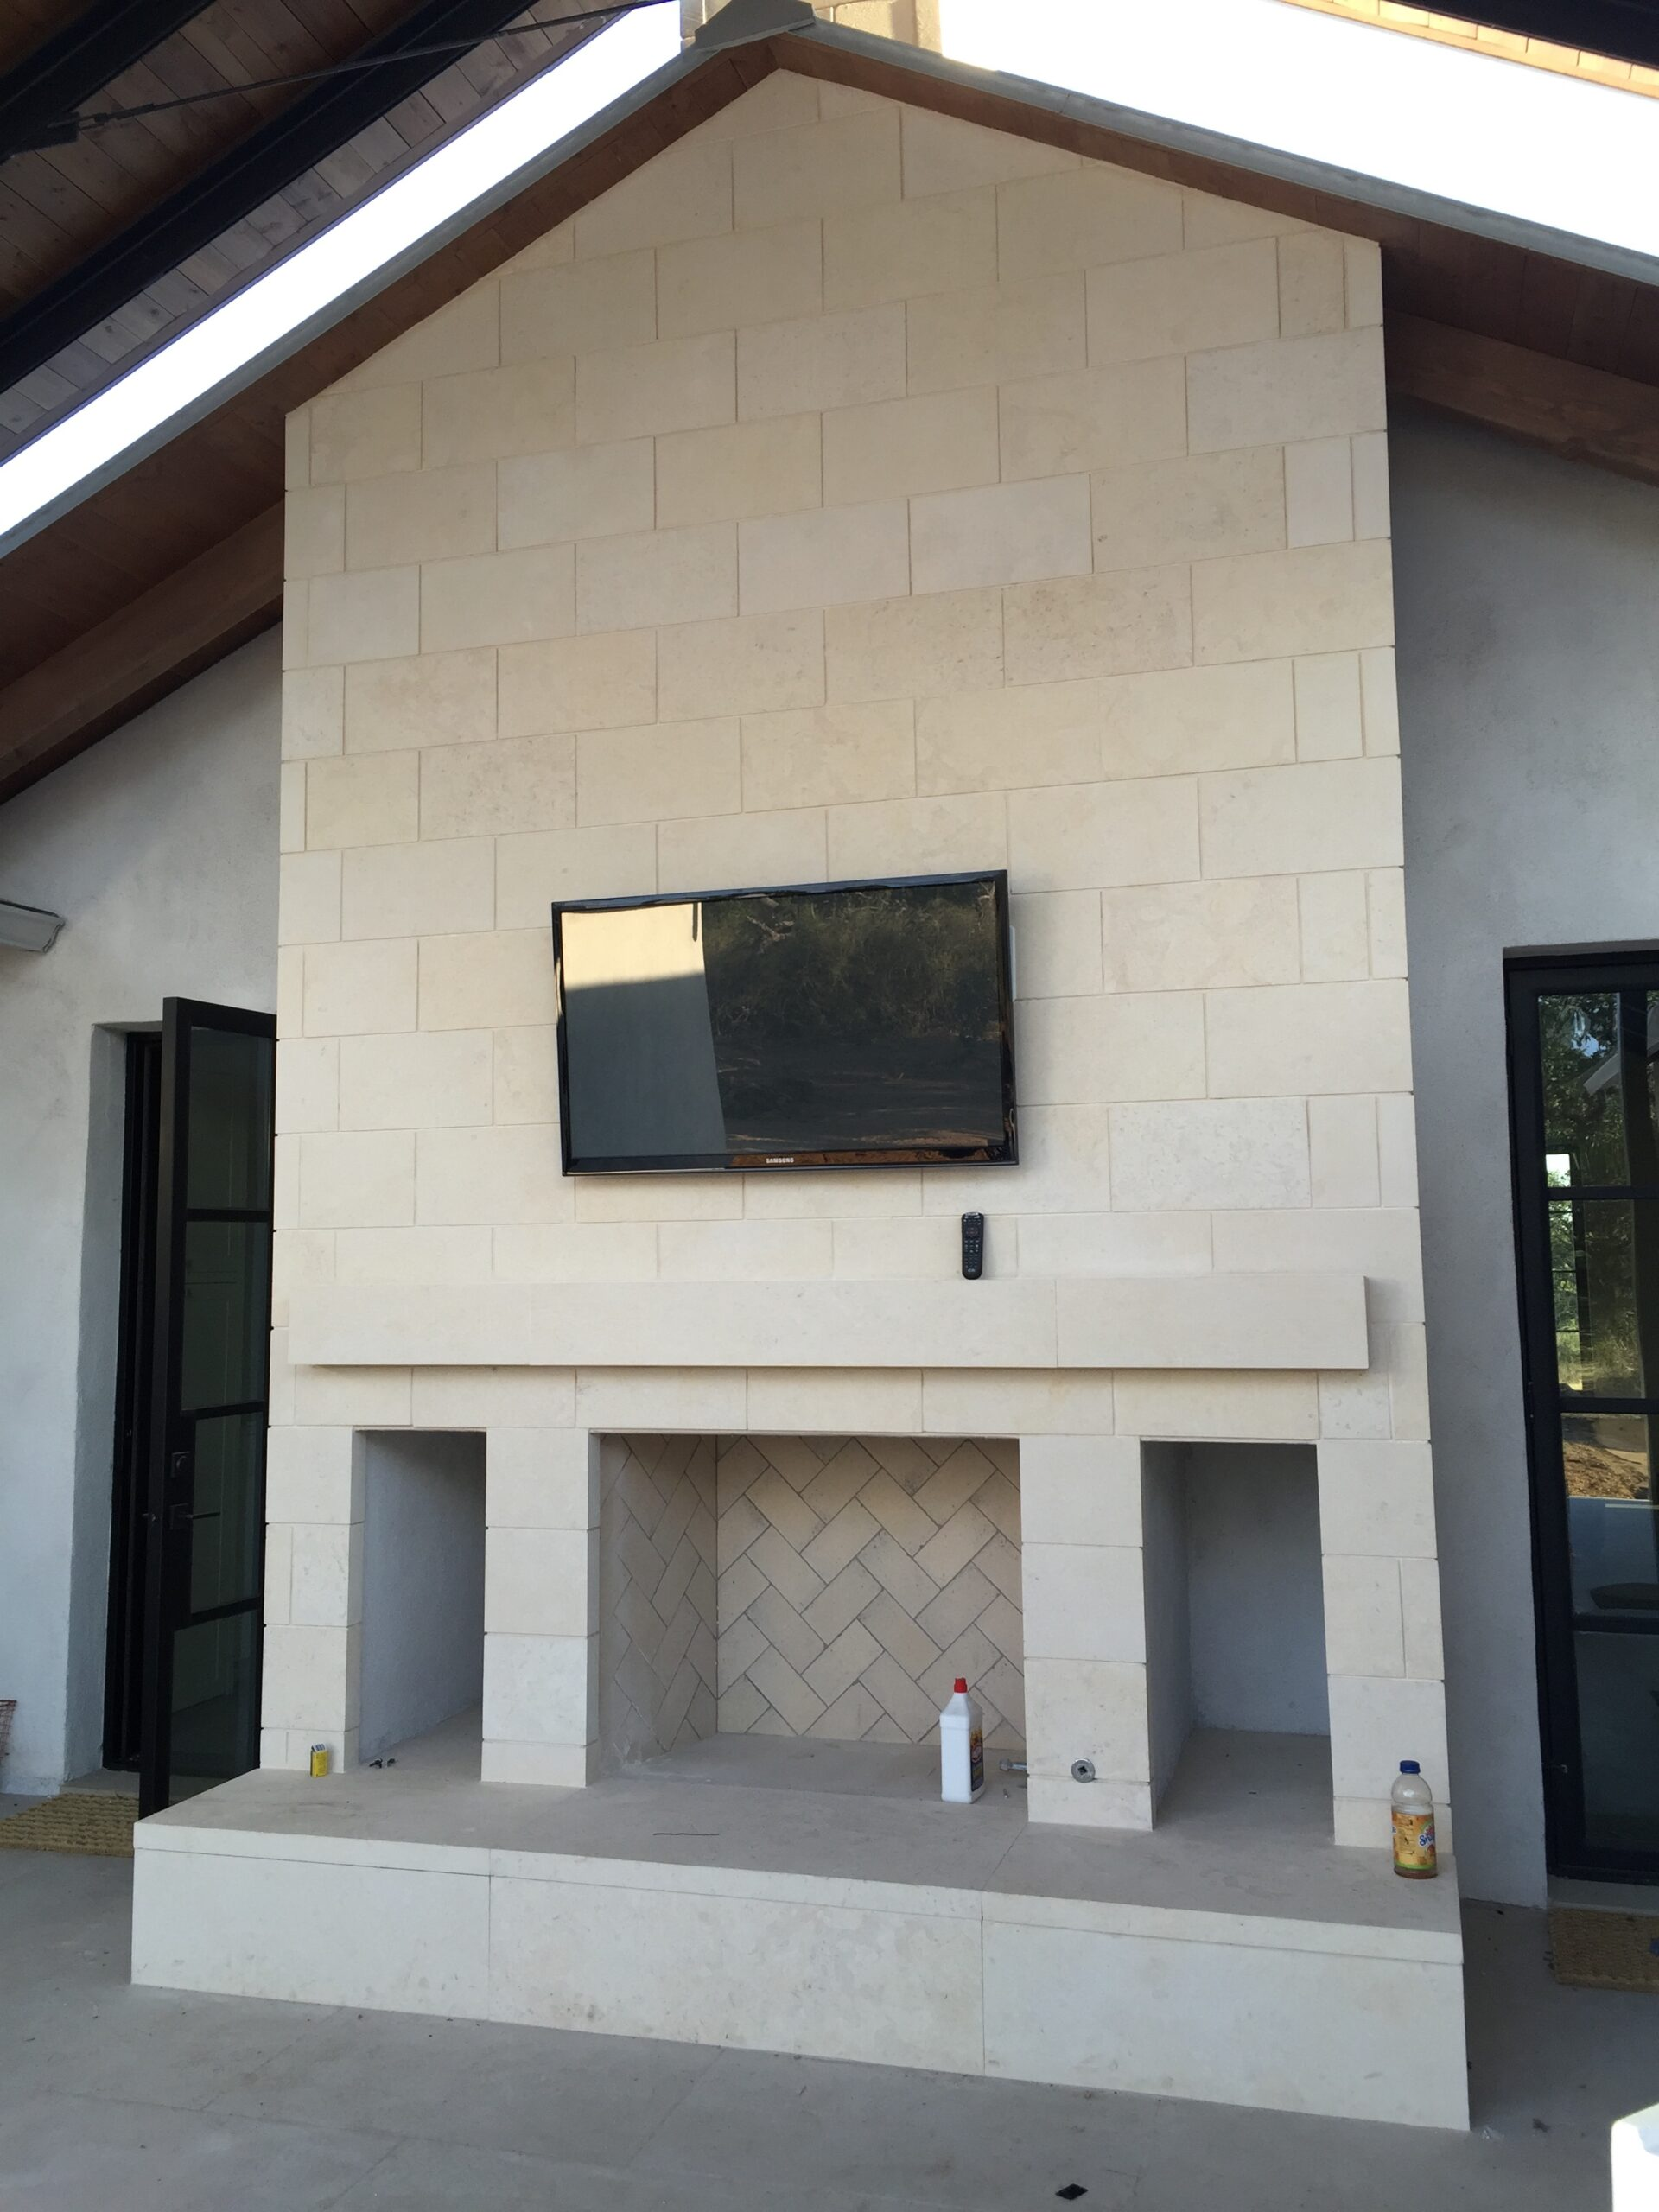 Outdoor TV installed above fireplace